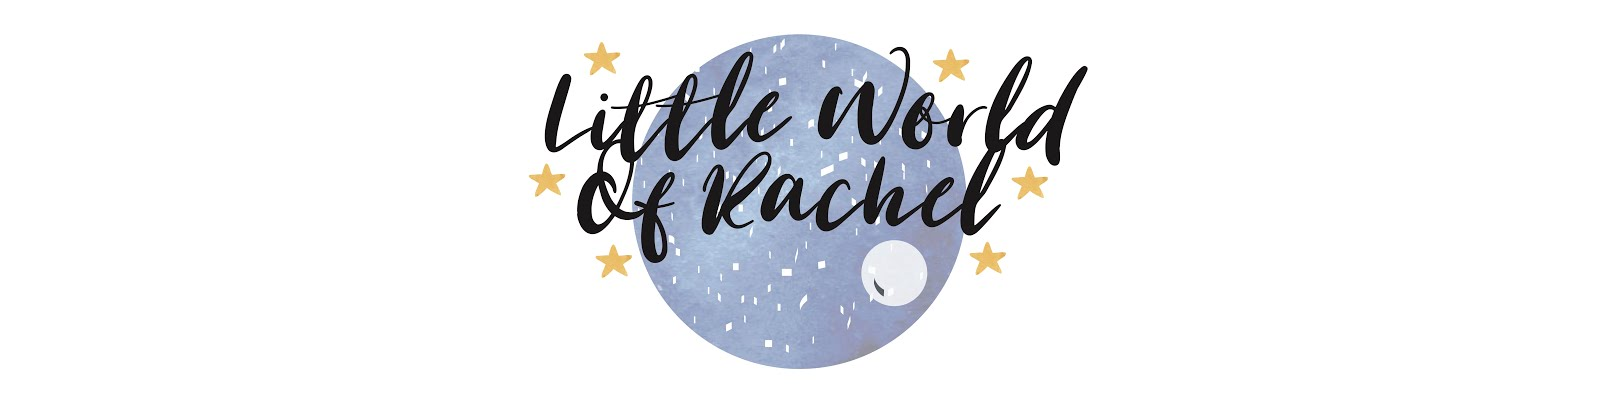 Little World of Rachel